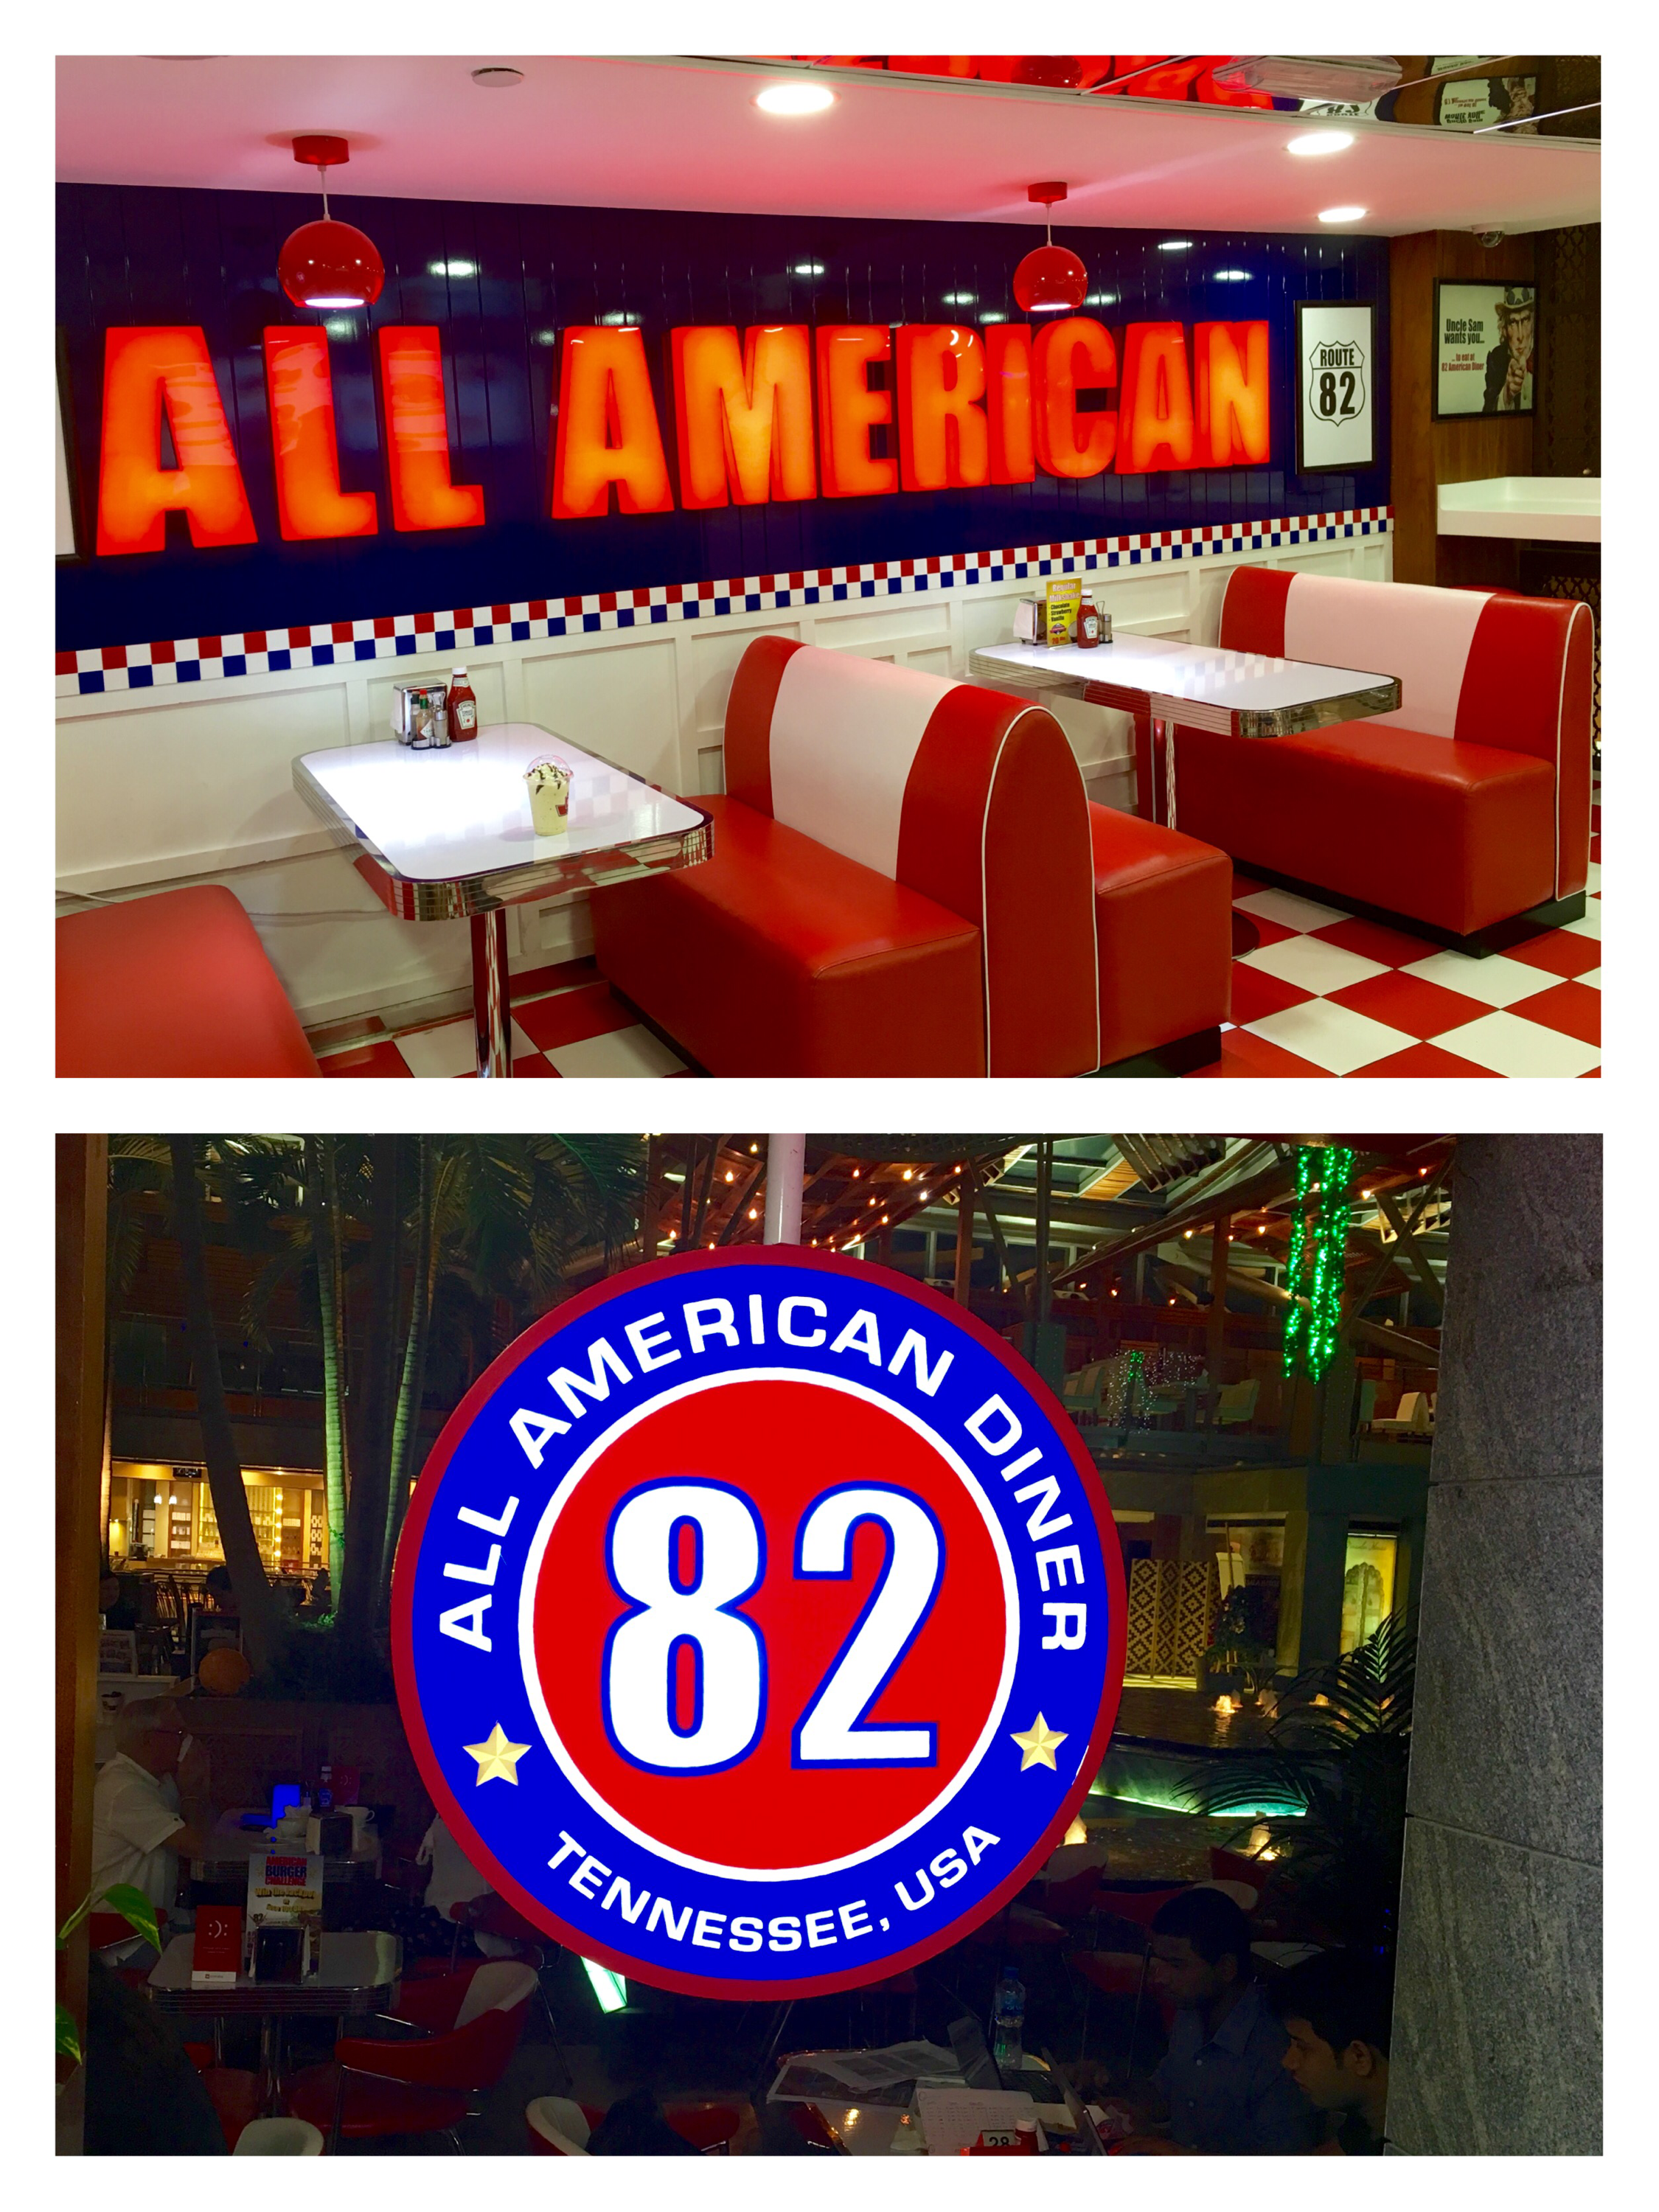 82 American Diner- Authentic American Dining experience